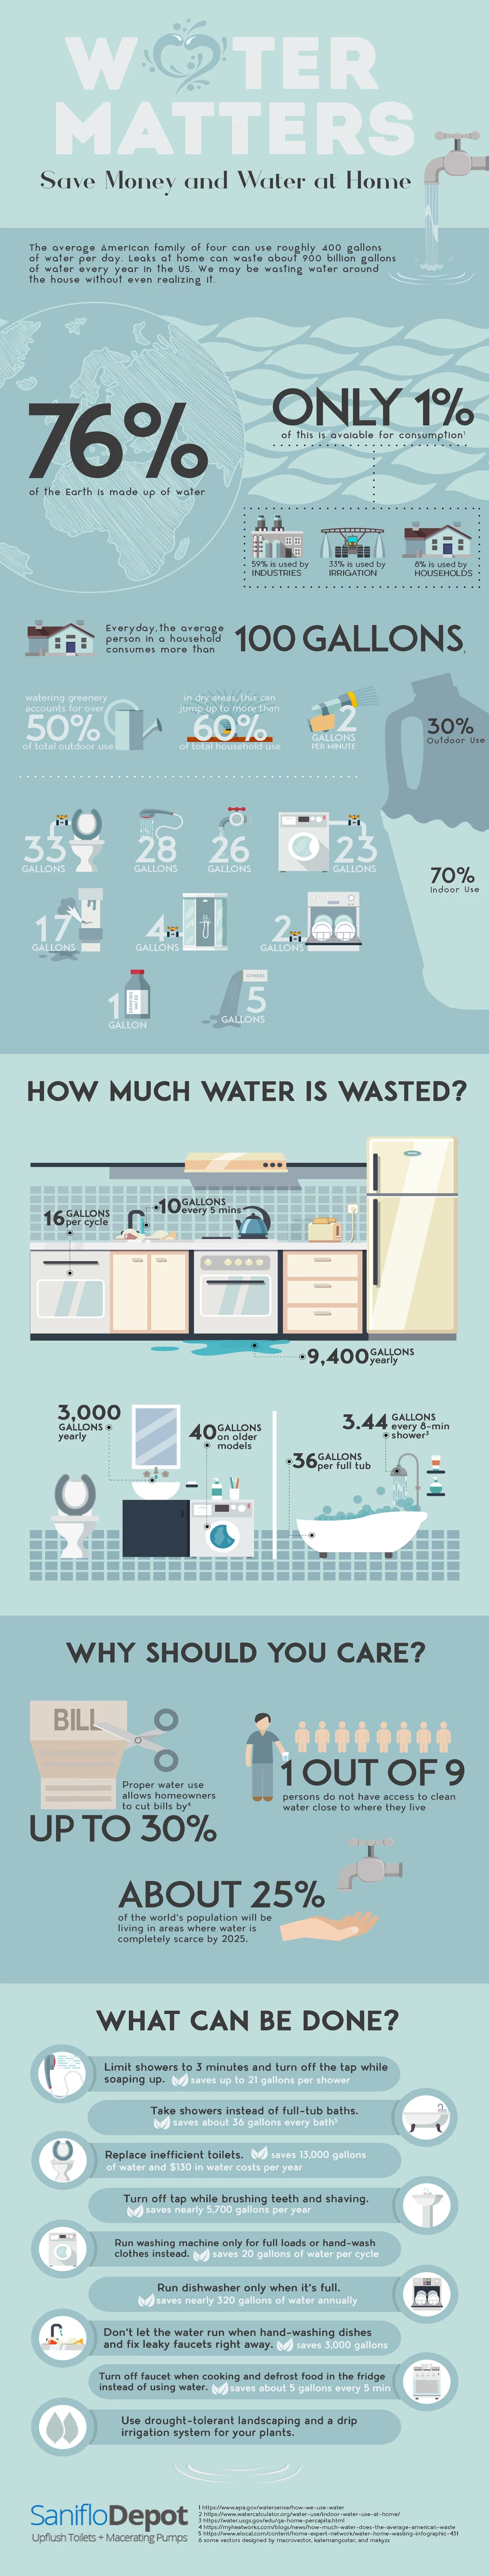 Save Water: Simple Tips to Manage Household Water Consumption - Infographic